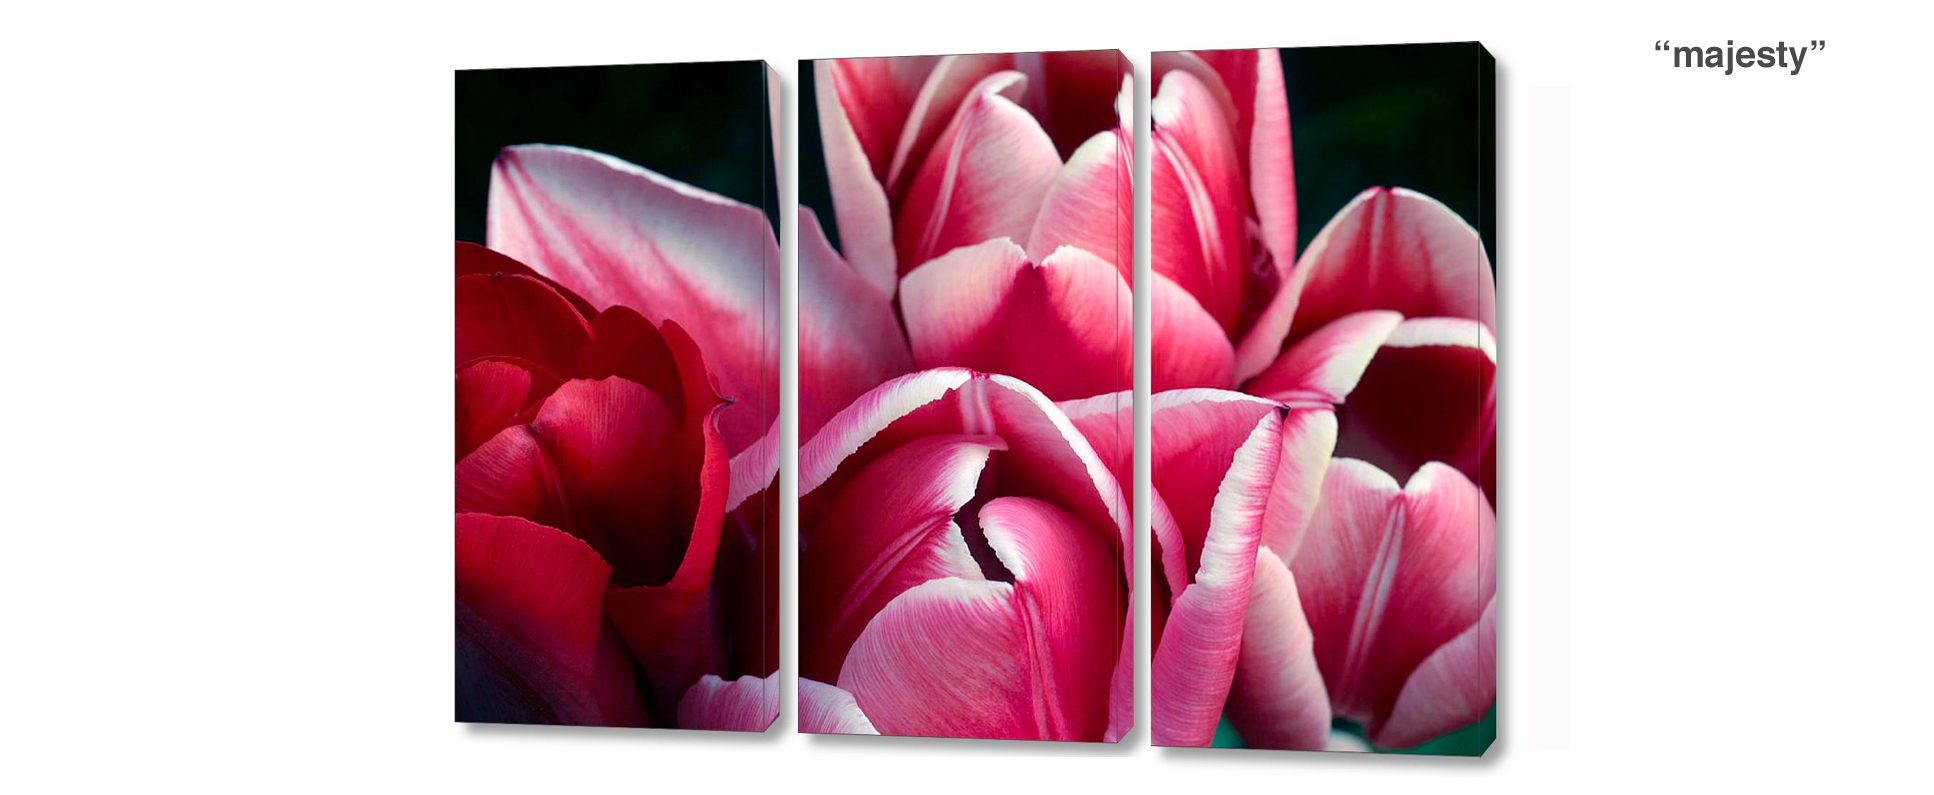 triptych tulip - 3 Piece limited edition giclee canvas floral wall decor